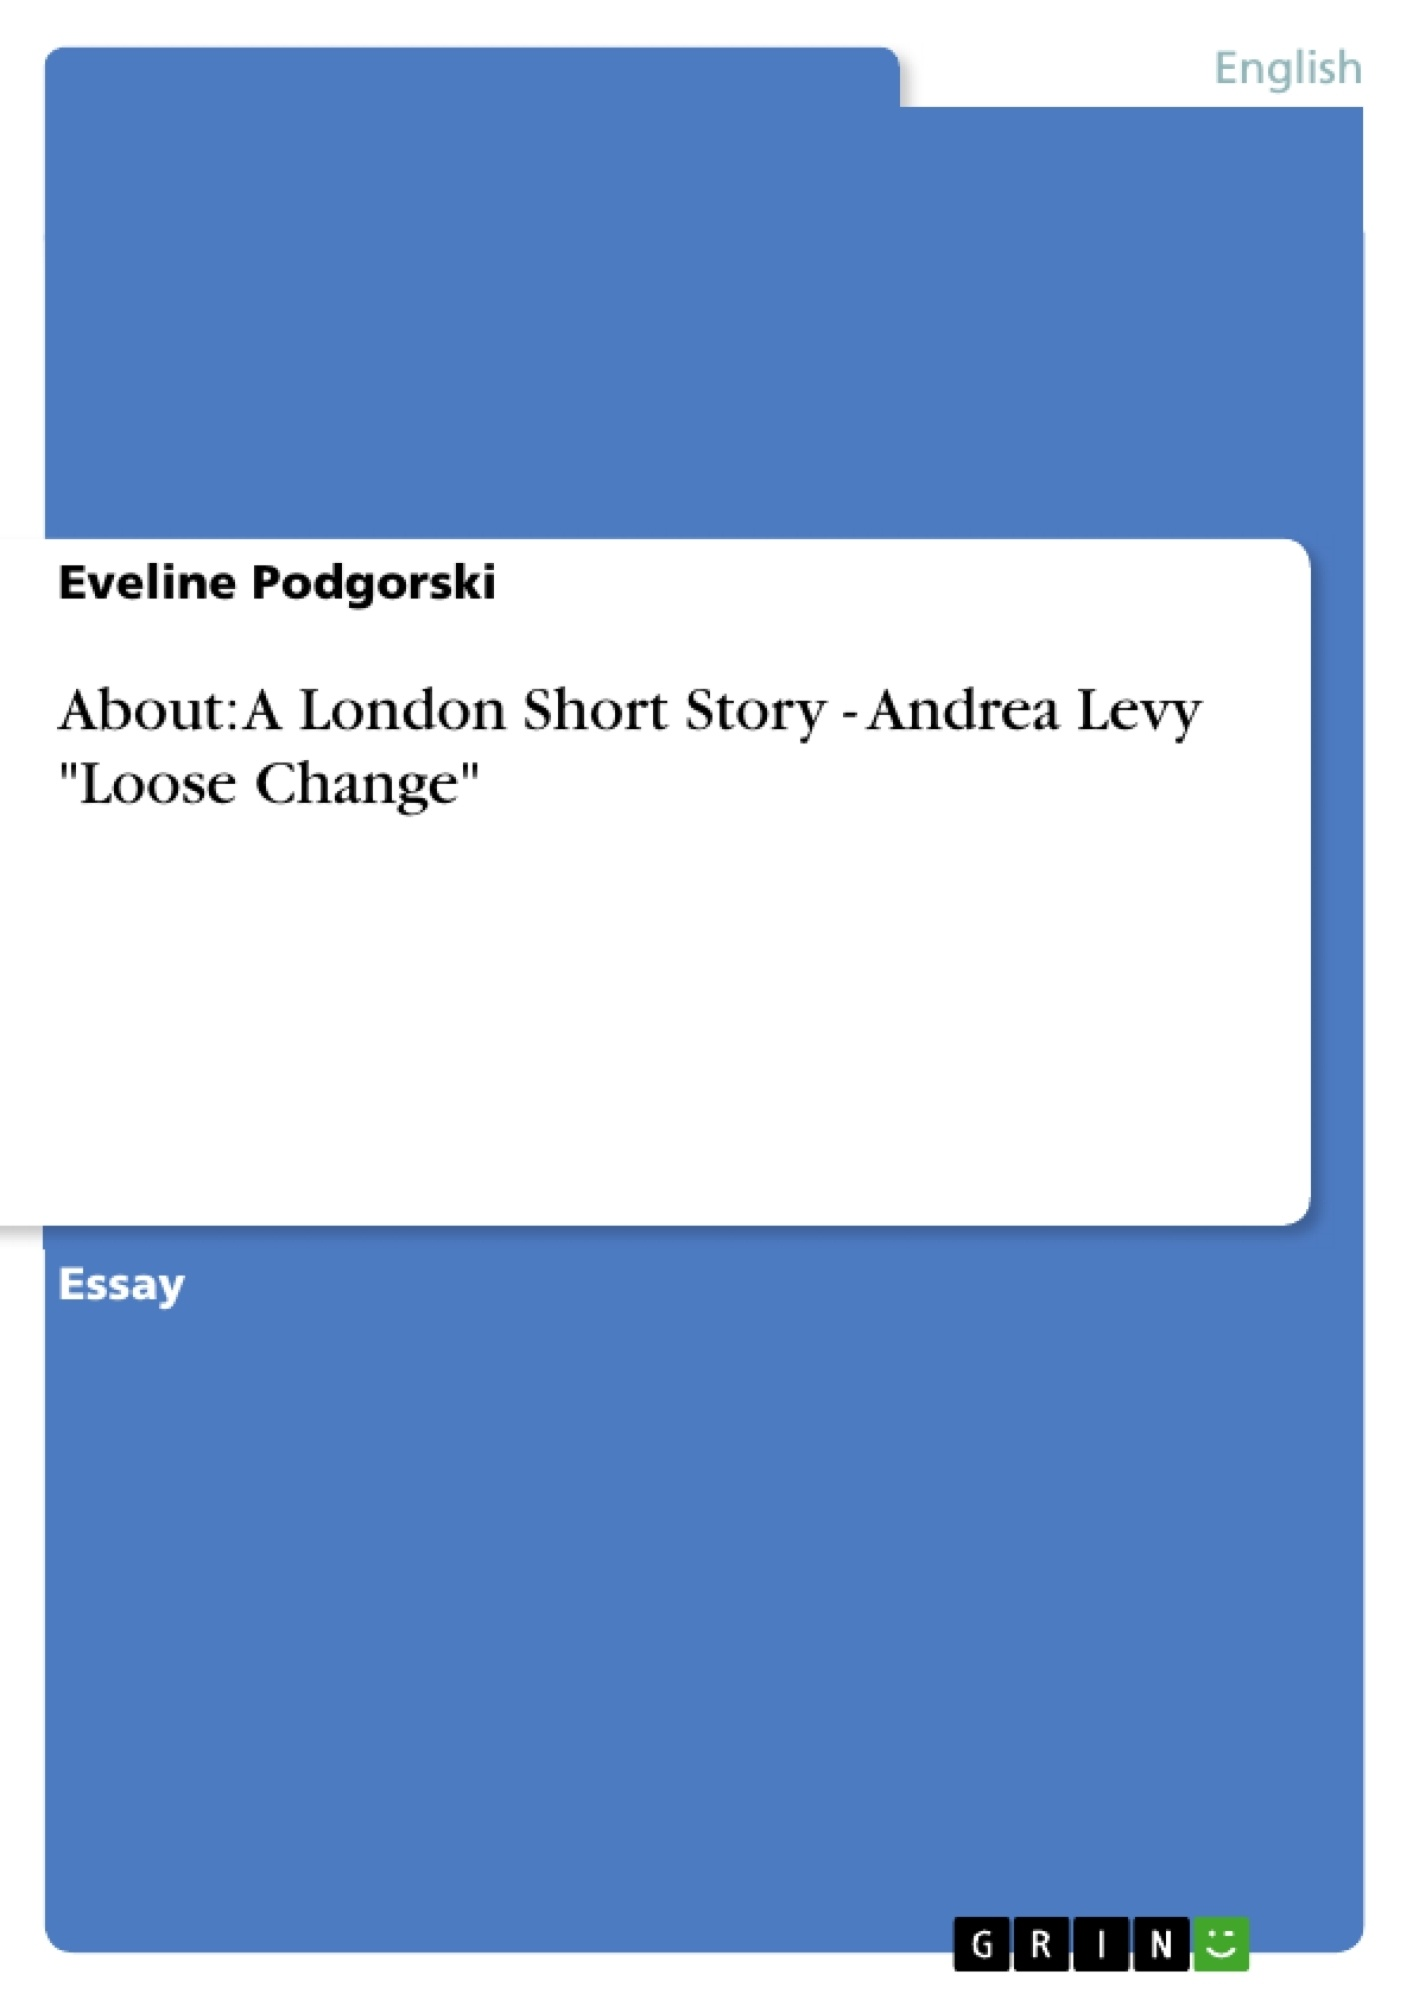 analysis of loose change by andrea Download about a london short story andrea levy loose change or read online here in pdf or epub please click button to get about a london short story andrea levy loose change book now all books are in clear copy here, and all files are secure so don't worry about it.